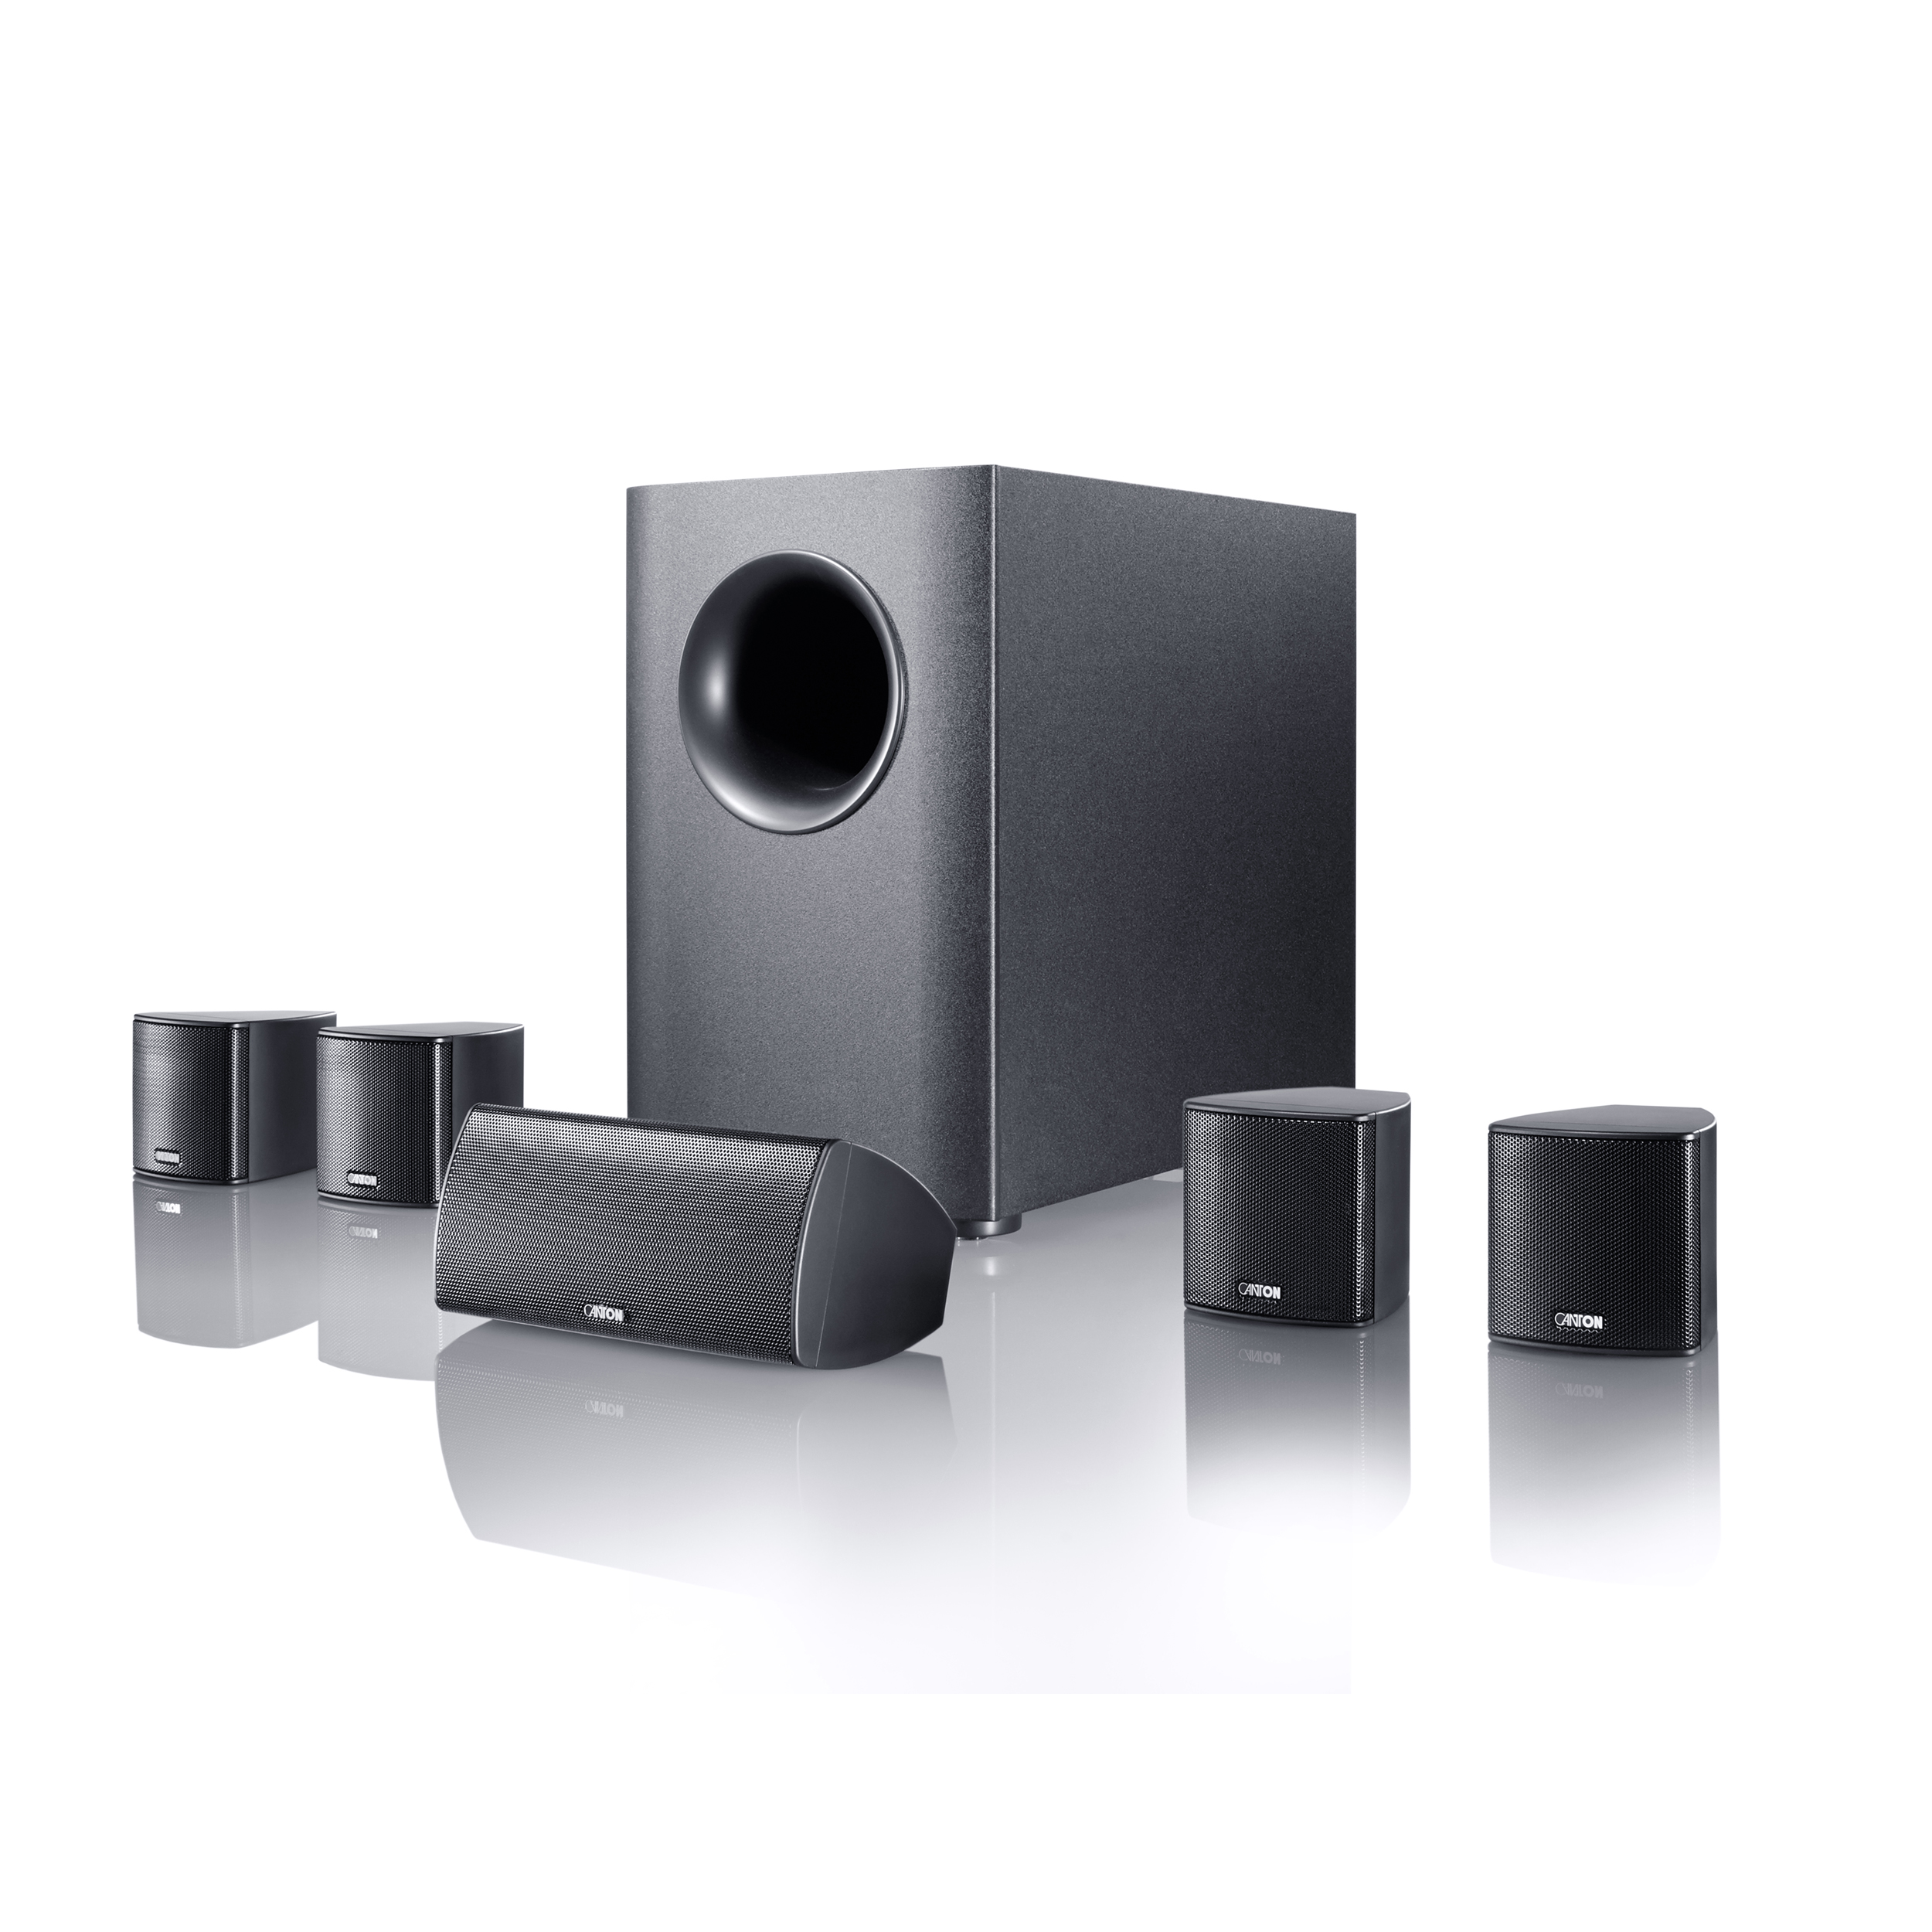 Movie 75 51 Home Cinema Canton Wiring Subwoofers Speakers To Change Ohms